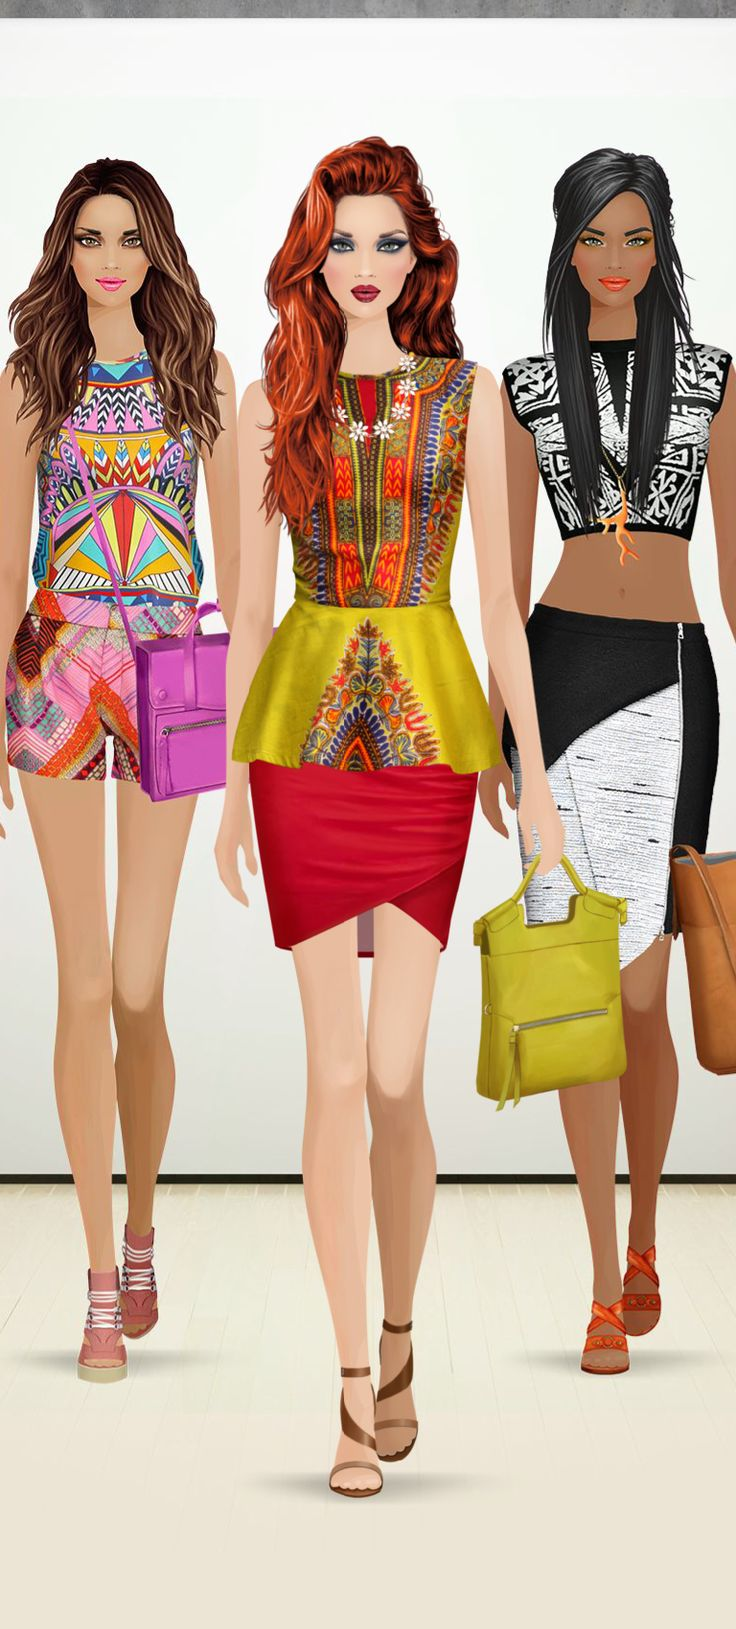 112 Best Images About Covet Fashion Game On Pinterest